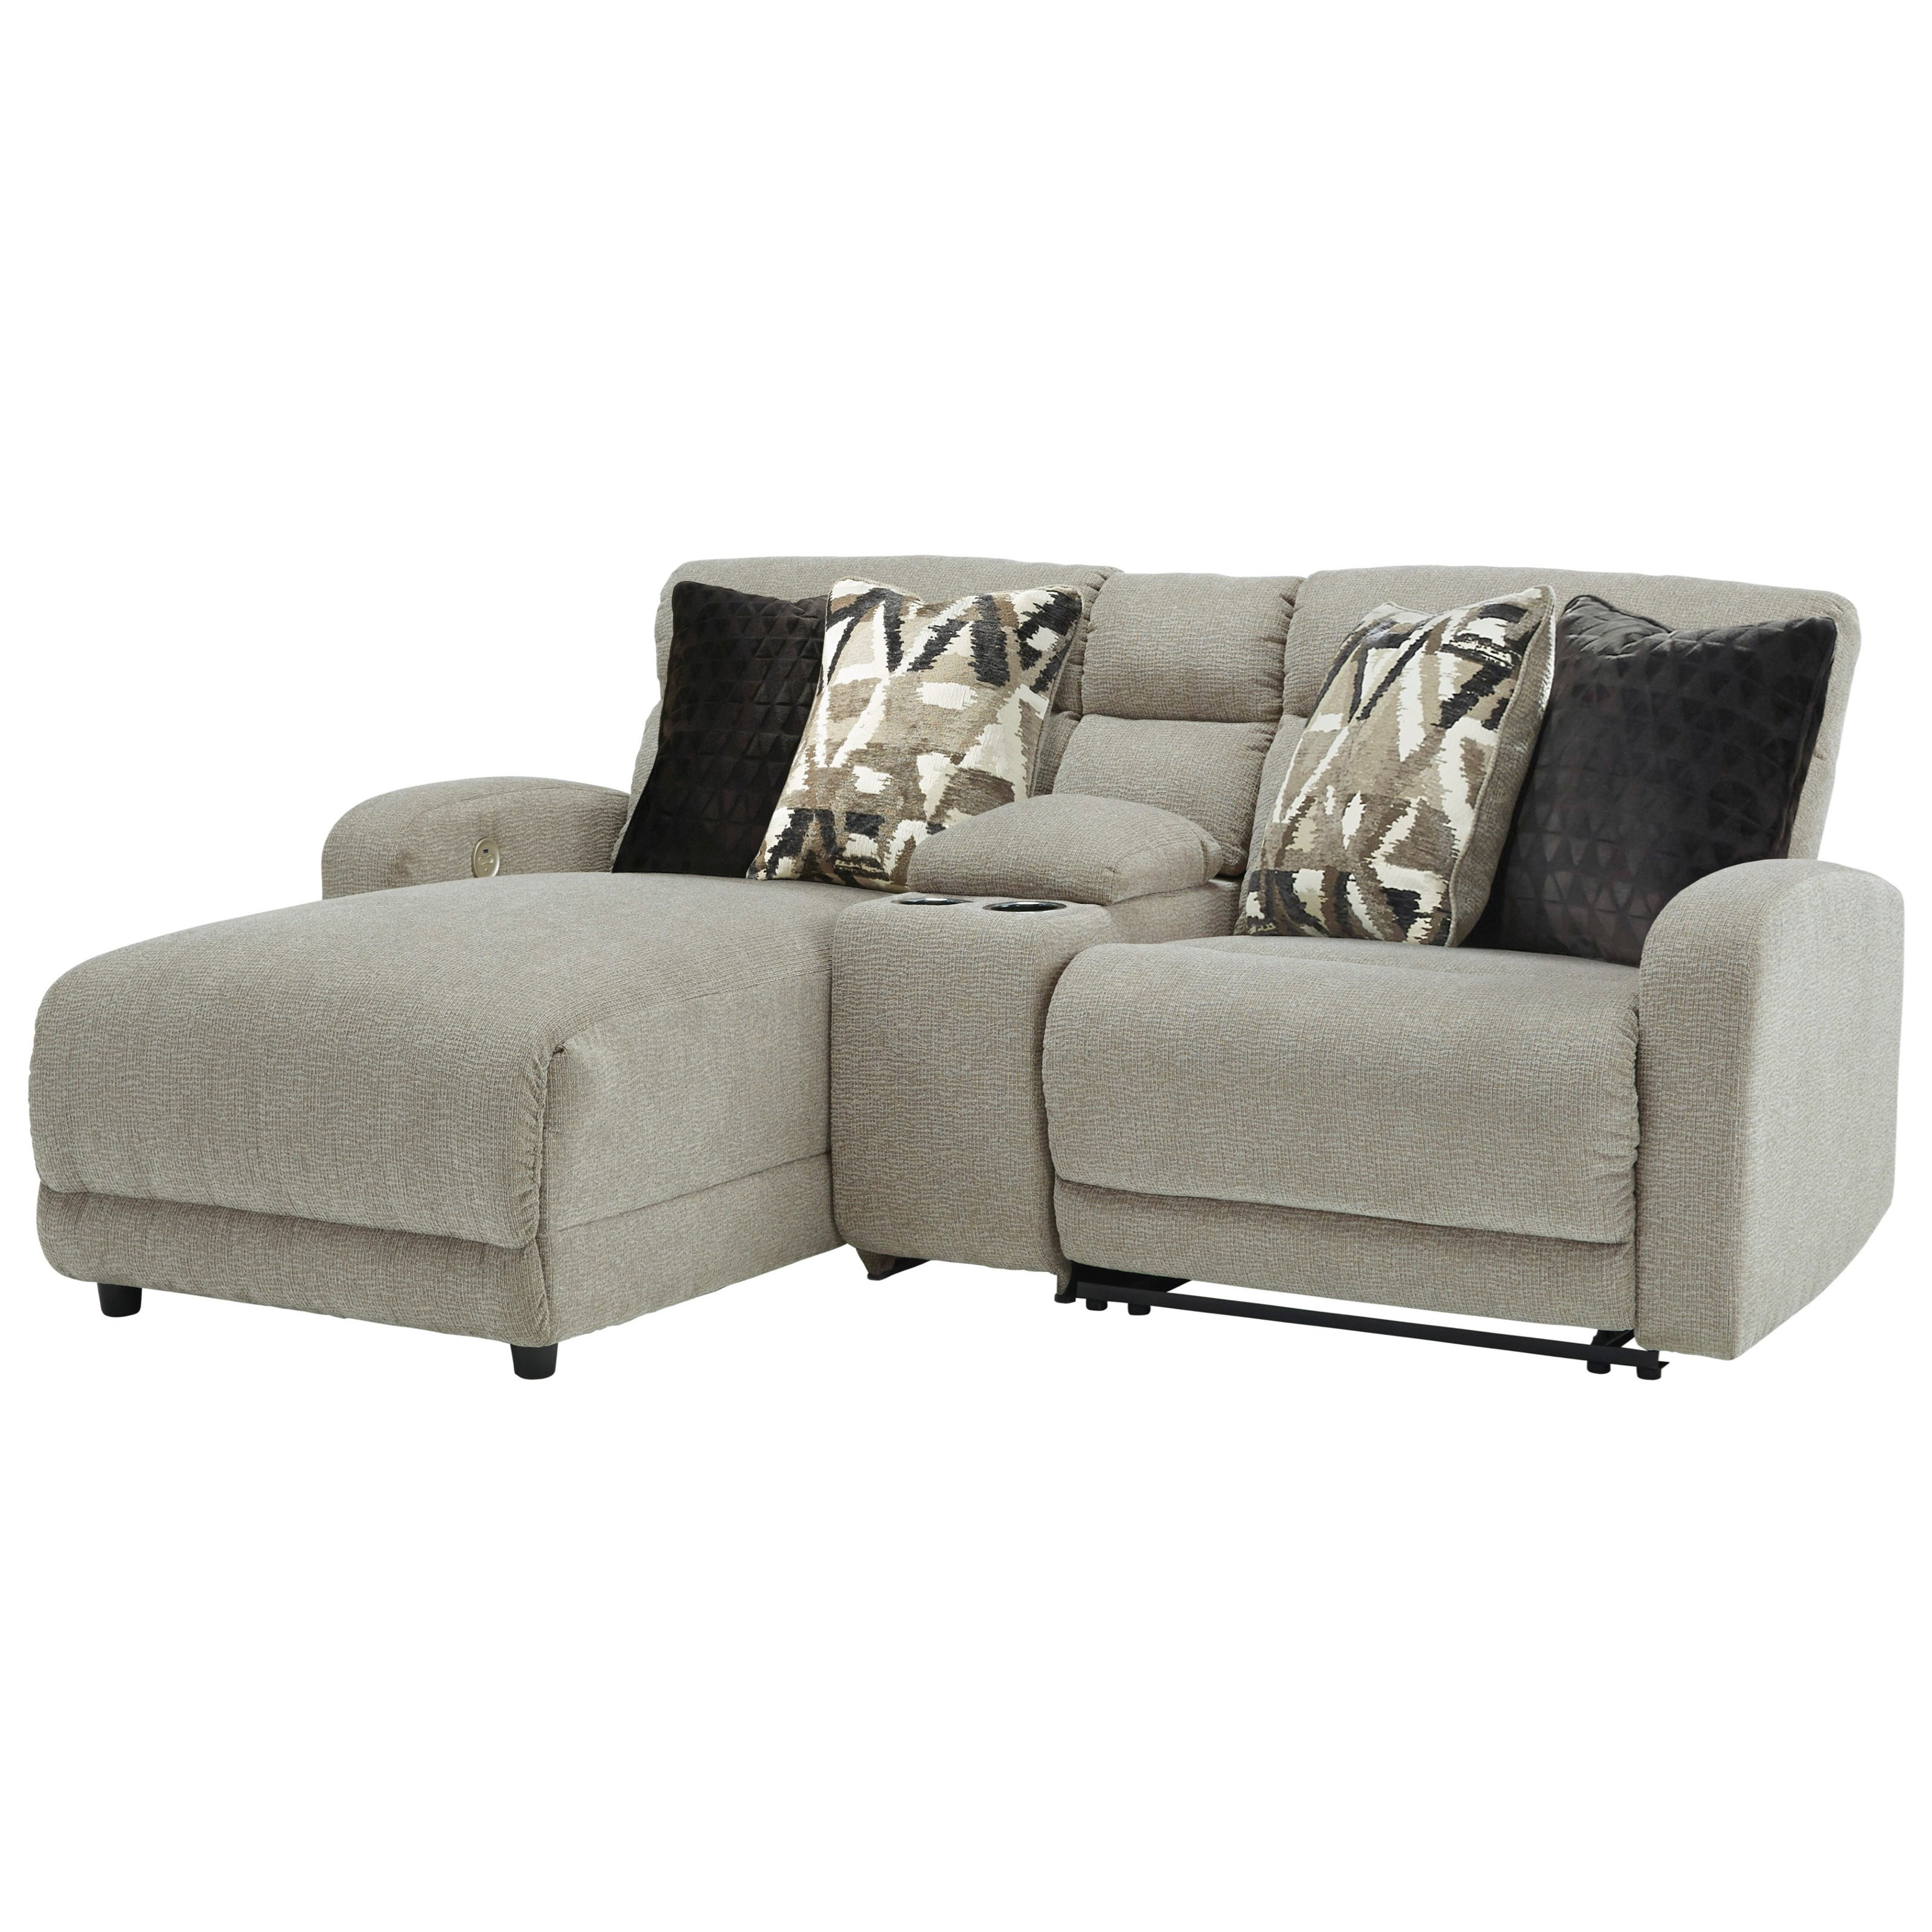 Colleyville 3-Piece Pwr Reclining Sectional with Chaise by Signature Design by Ashley at Sparks HomeStore